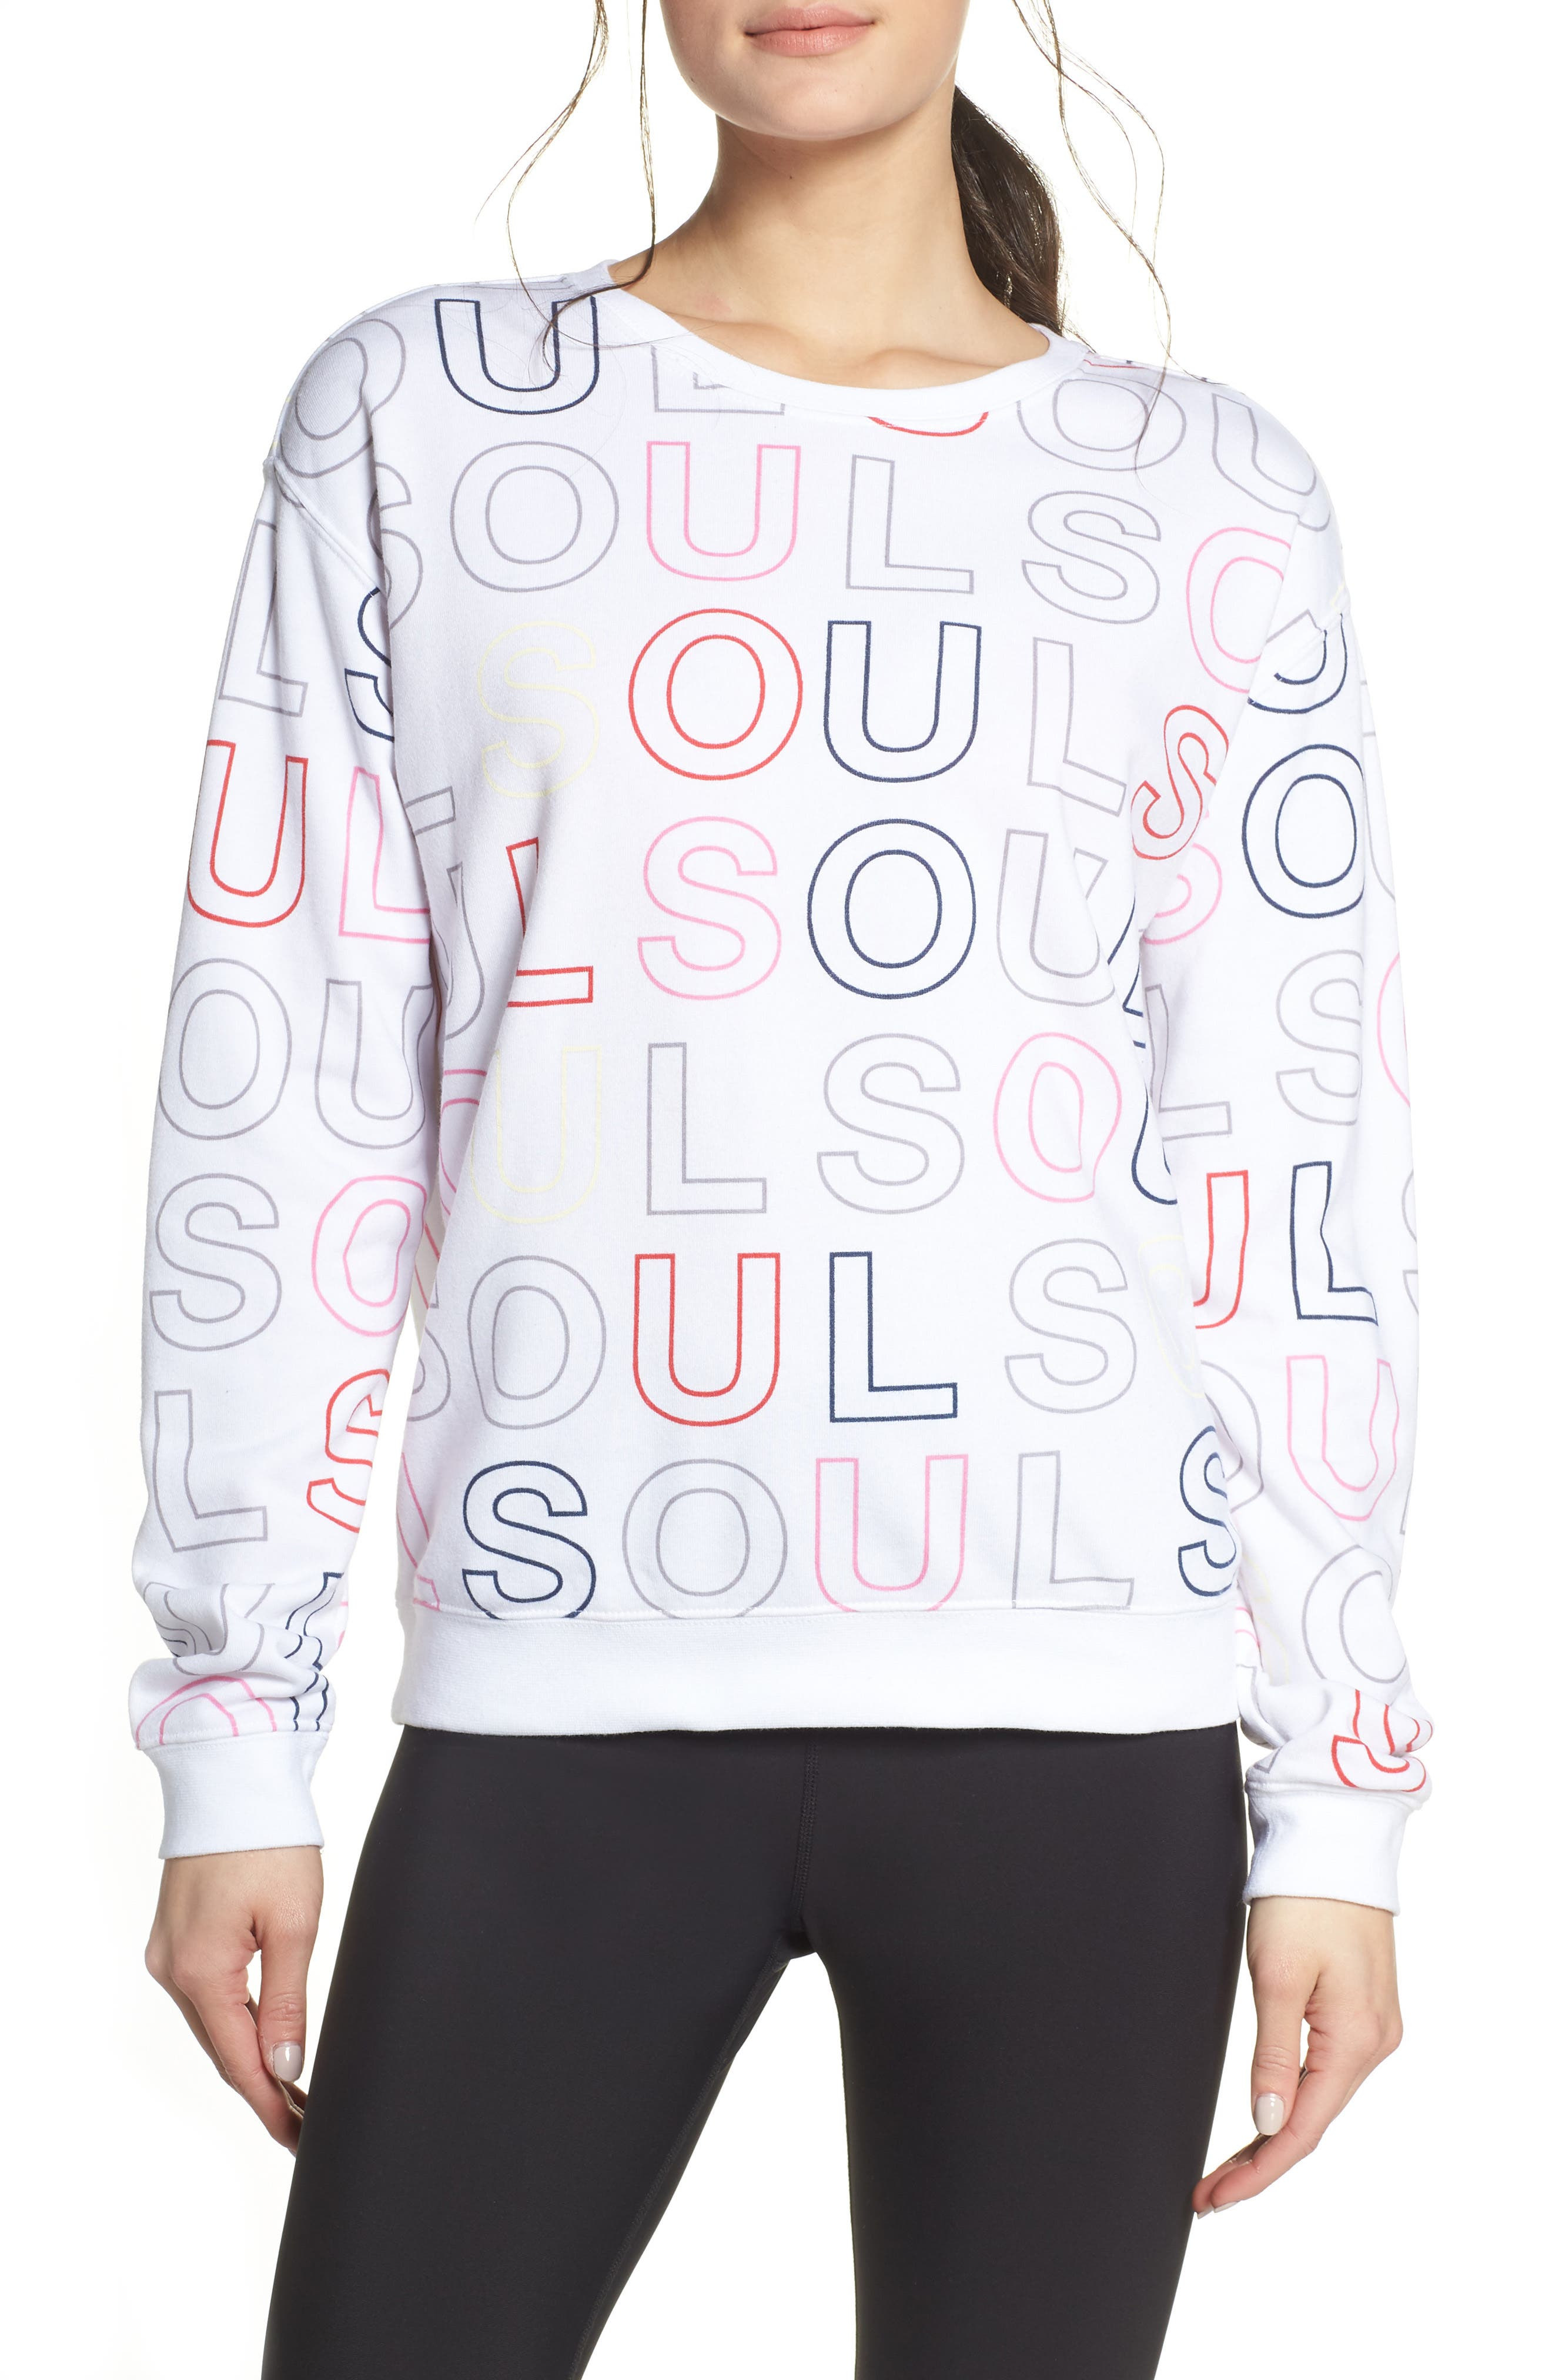 Soul By Soulcycle Knockout Print Sweatshirt, White